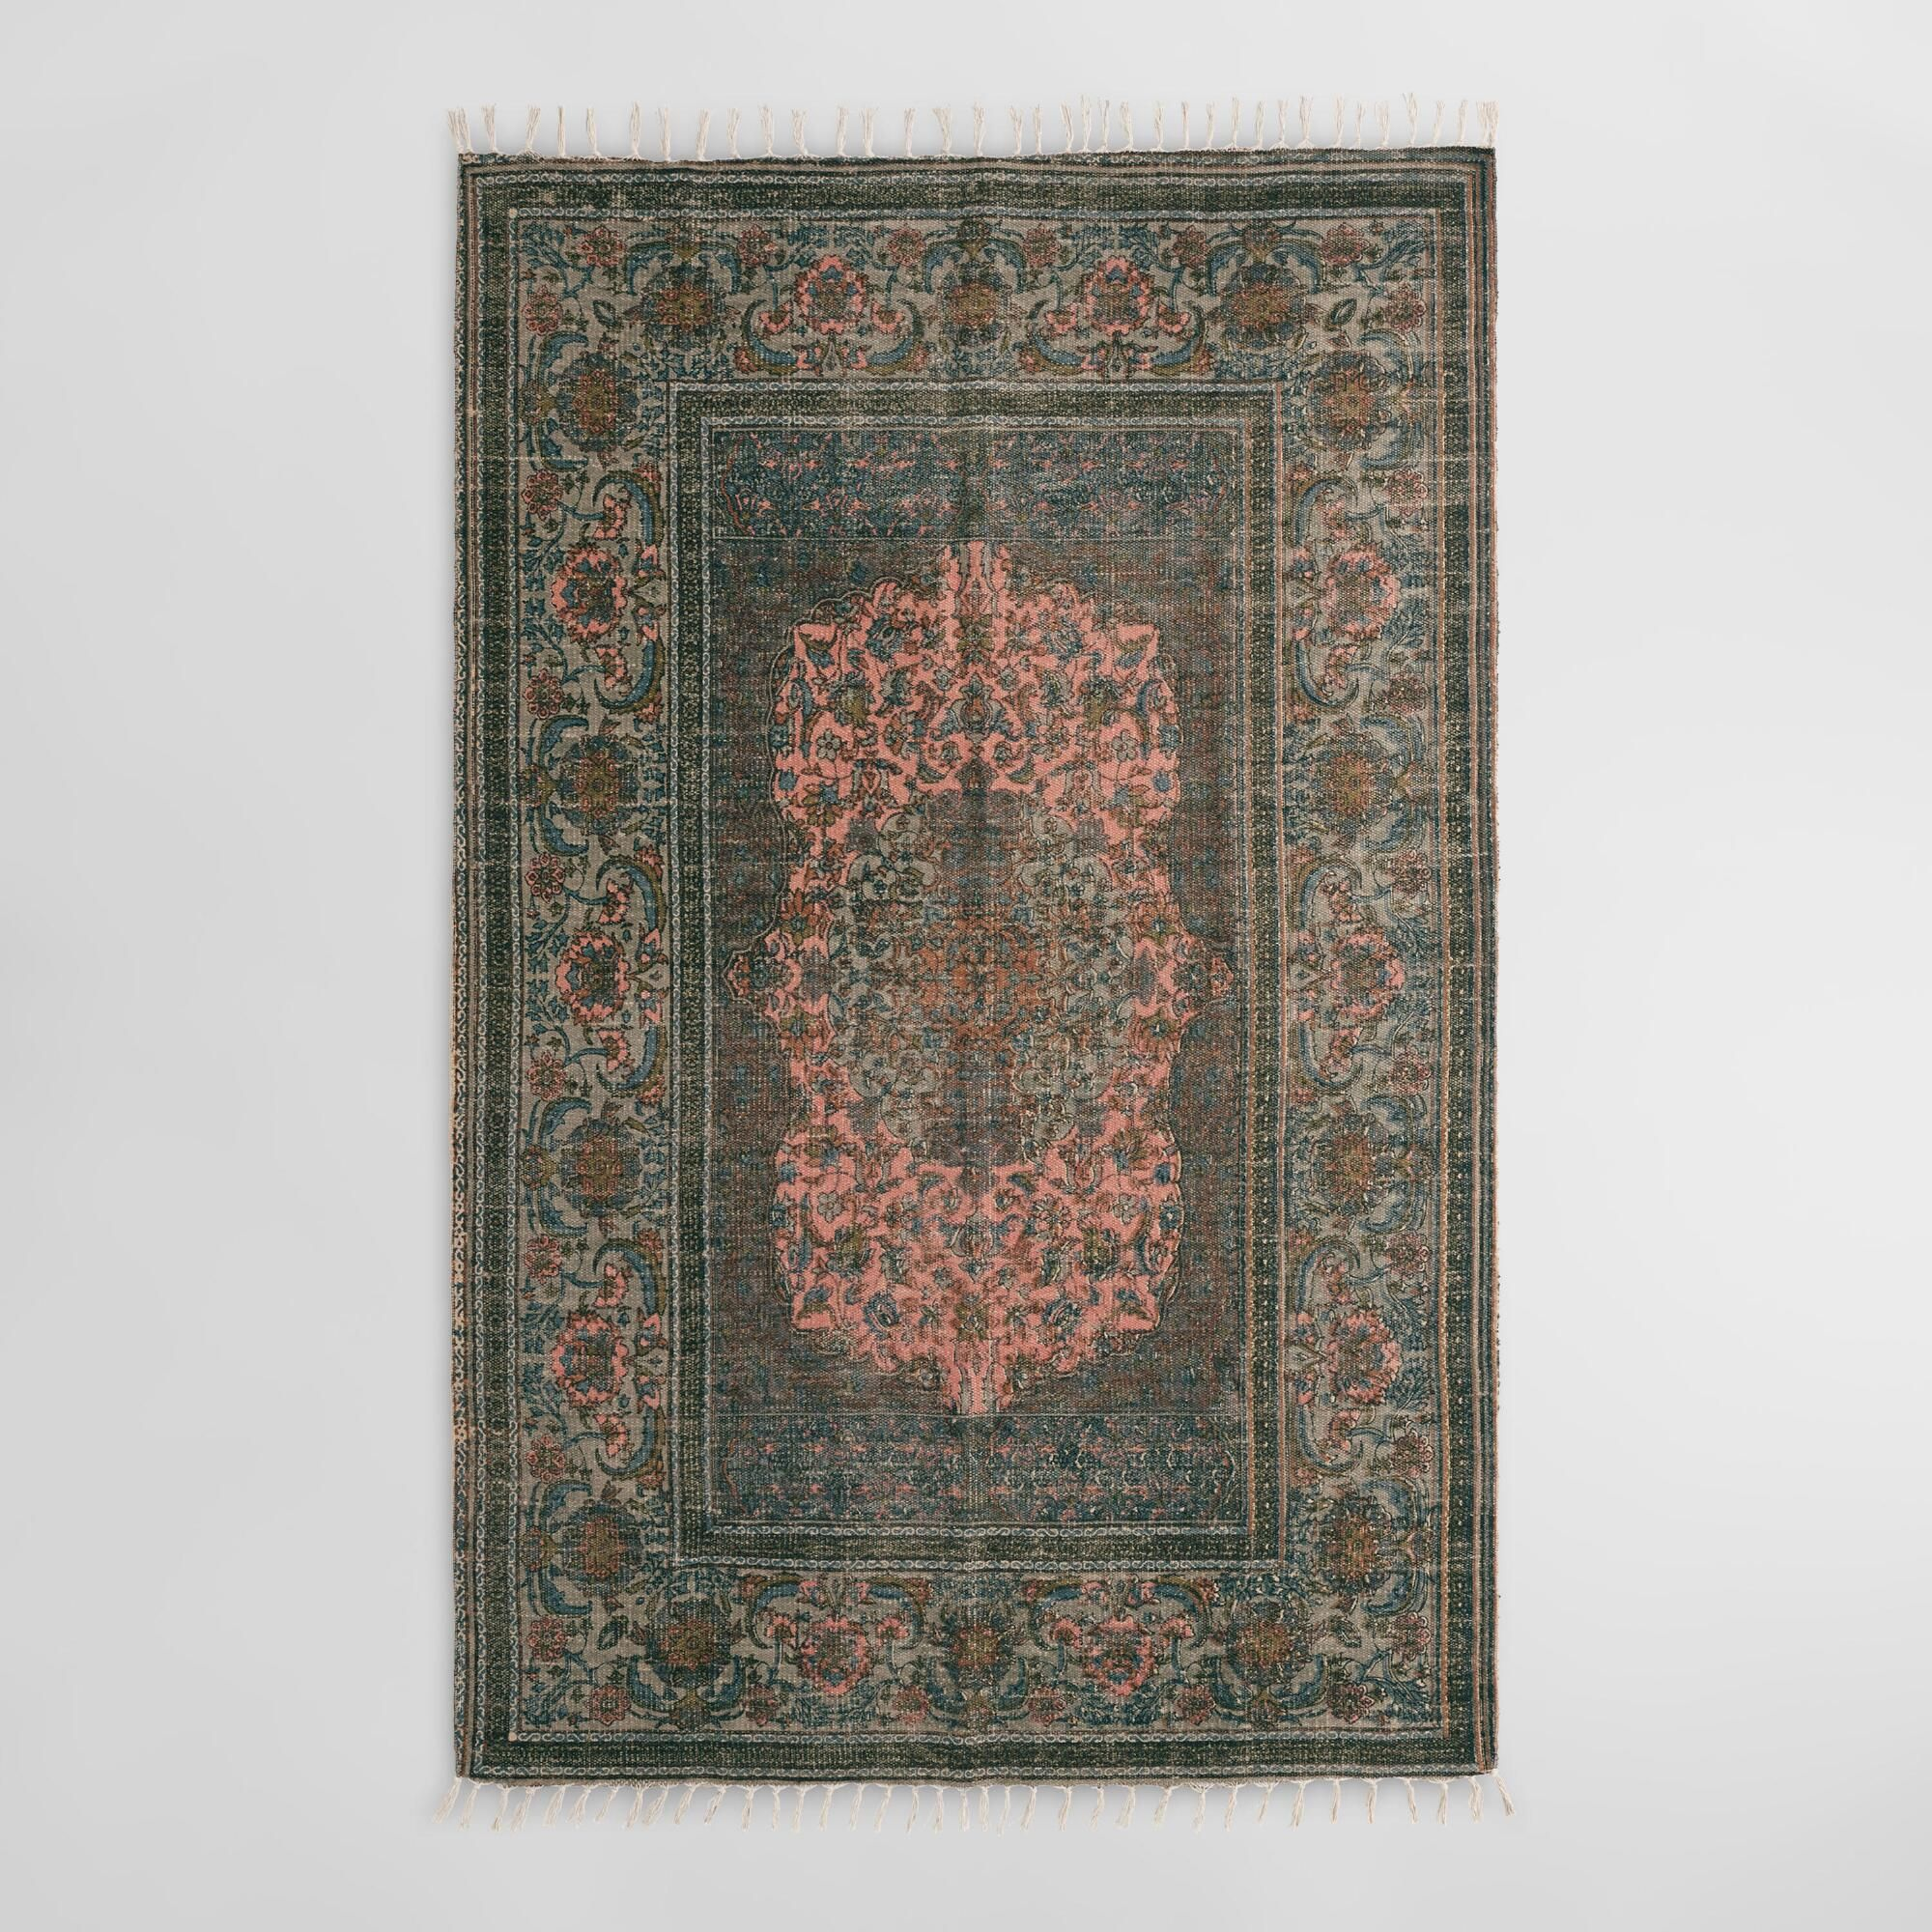 inexpensive kitchen rugs wall mounted faucets blush persian medallion print woven jute puri area rug by world market